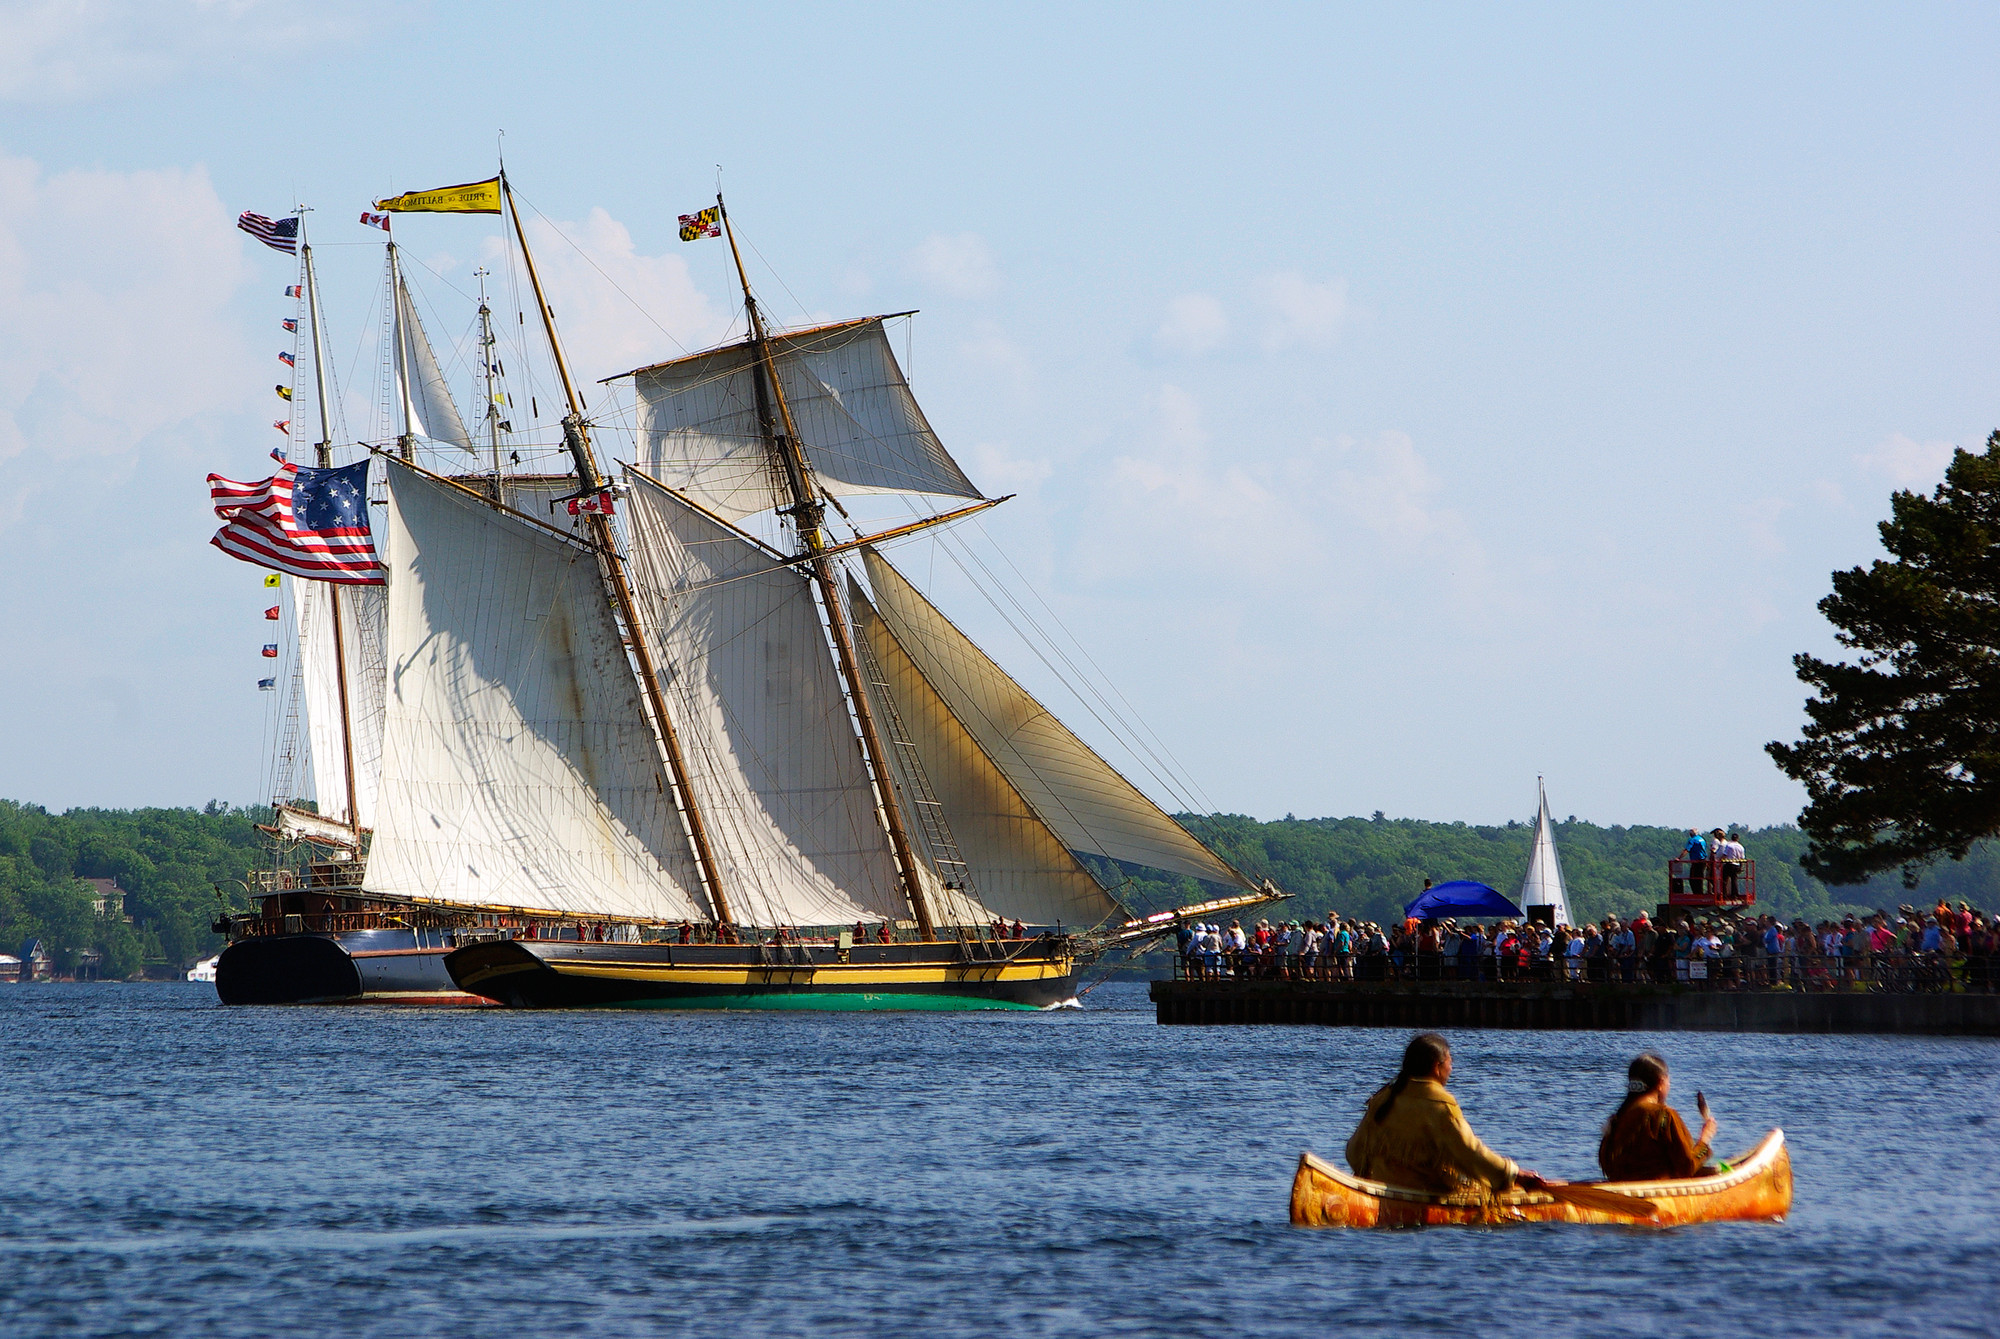 Boat aficionados of all kinds flock to Brockville's waterfront for June's All Ships Festival. (The Great Waterway)